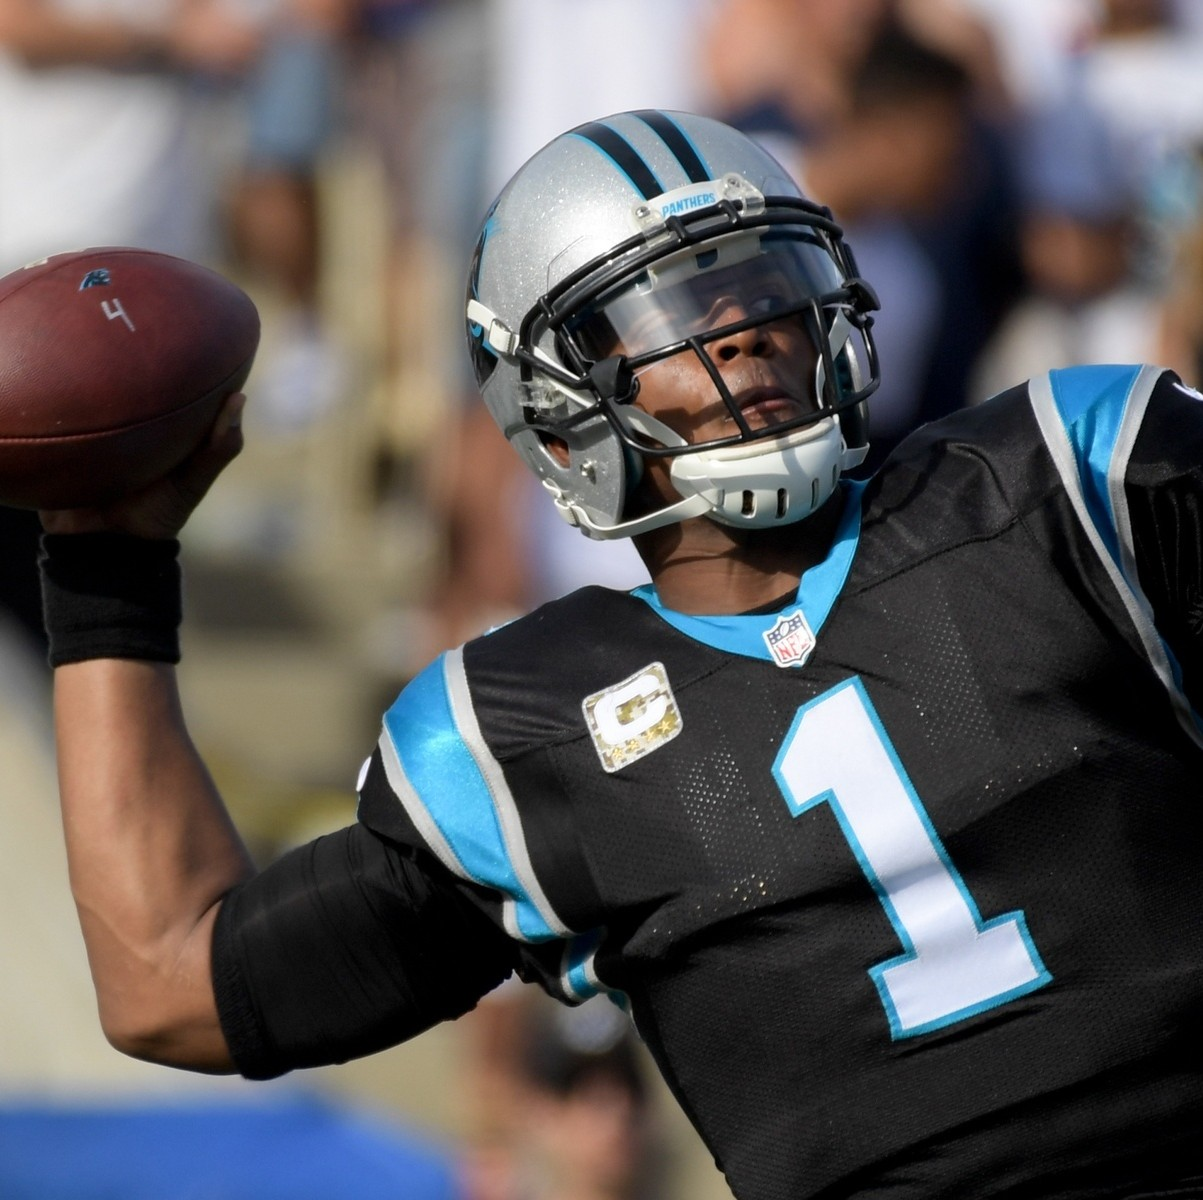 sports carolina panthers article